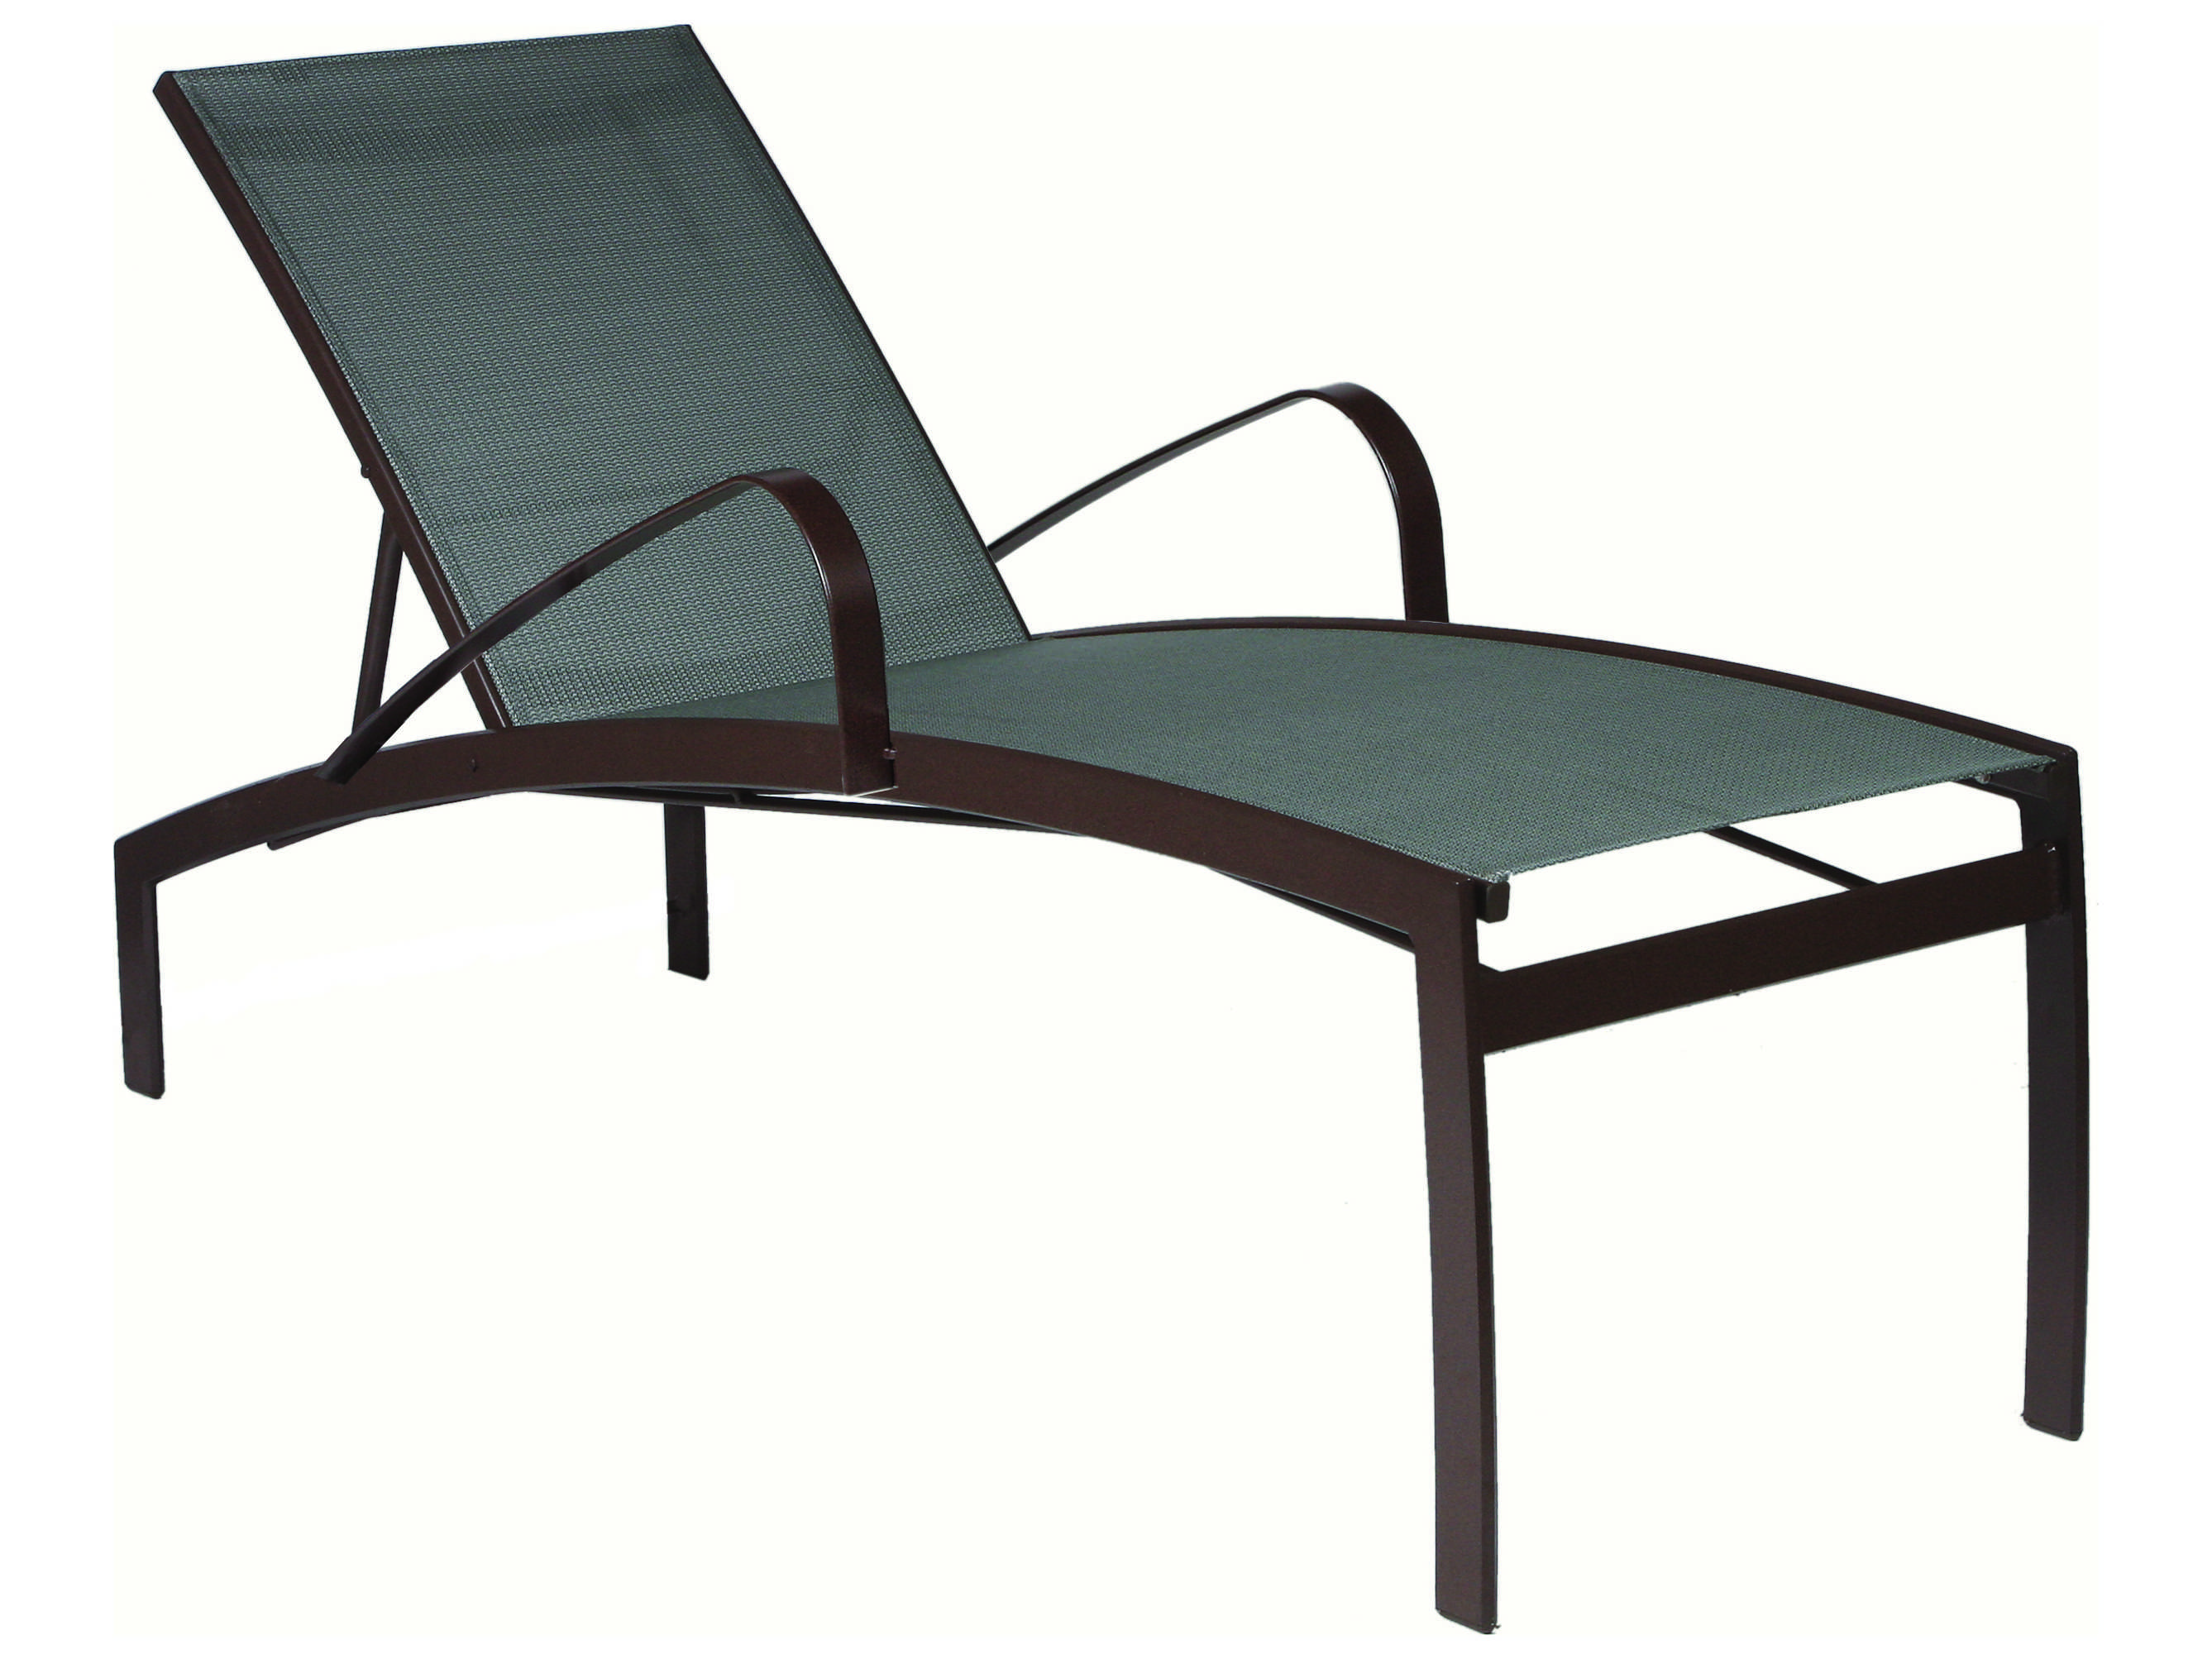 Suncoast vision sling cast aluminum chaise lounge 7994 for Chaise lounge aluminum